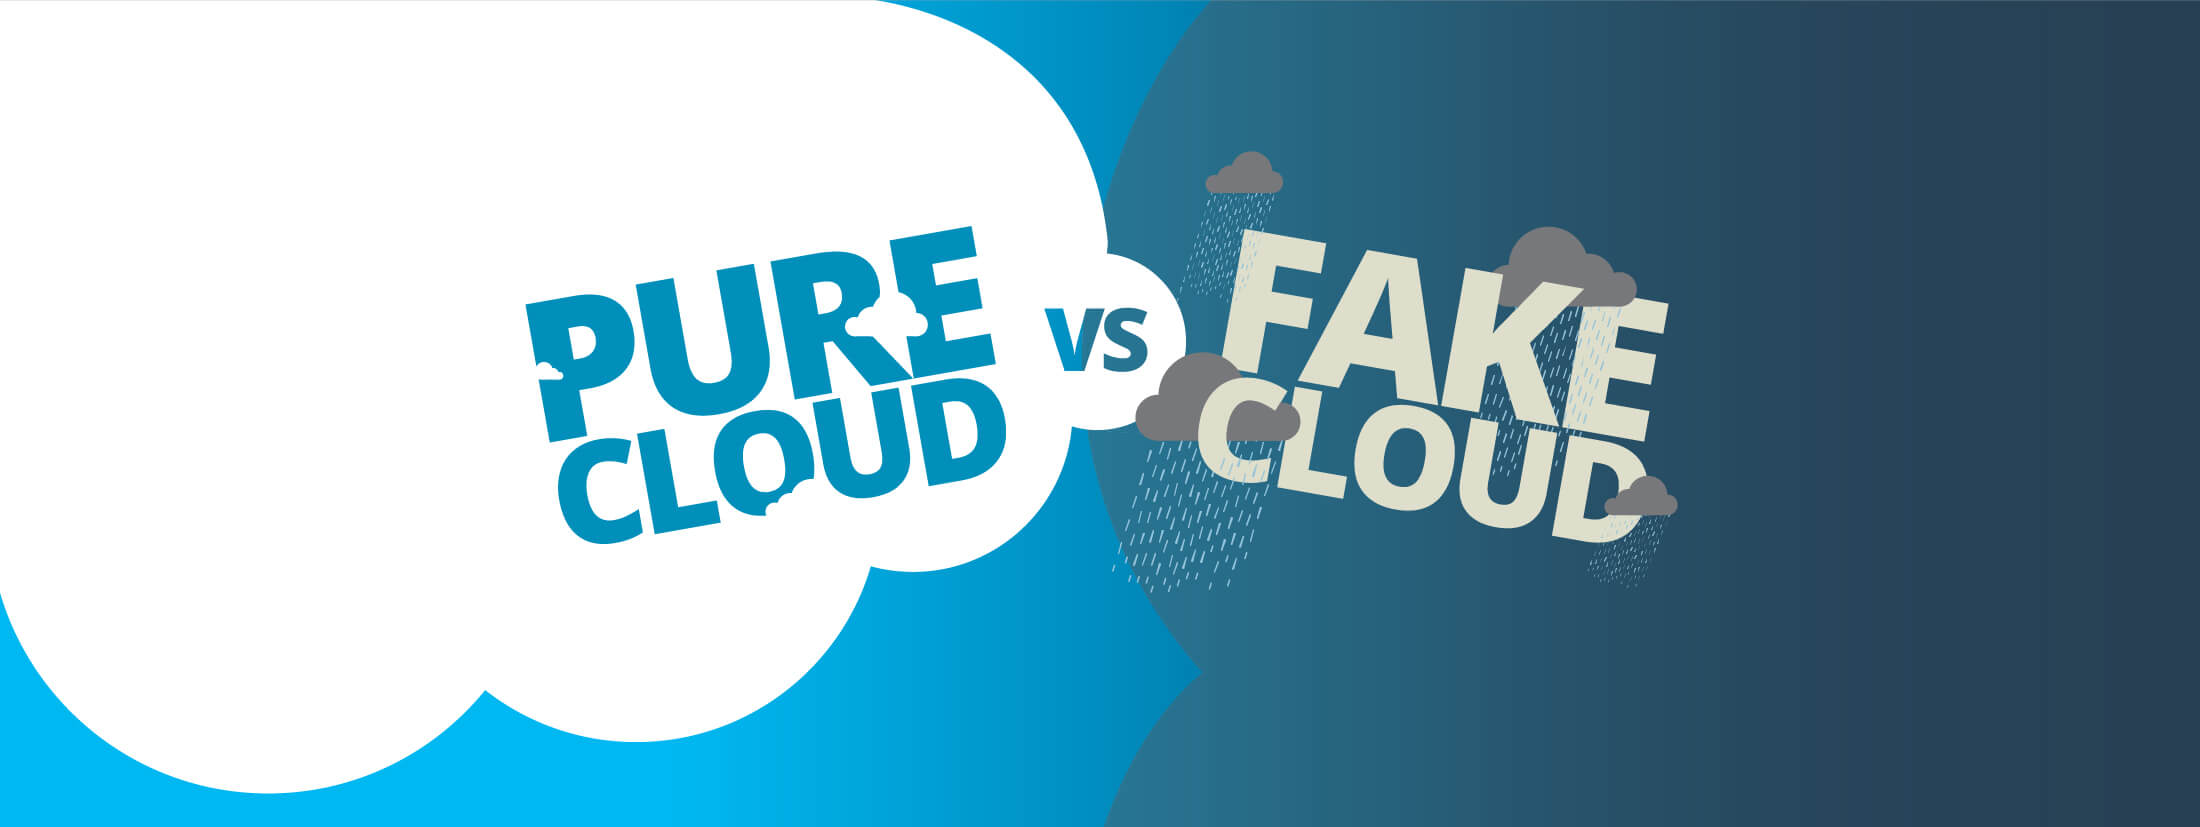 Pure cloud versus fake cloud — know the differences.